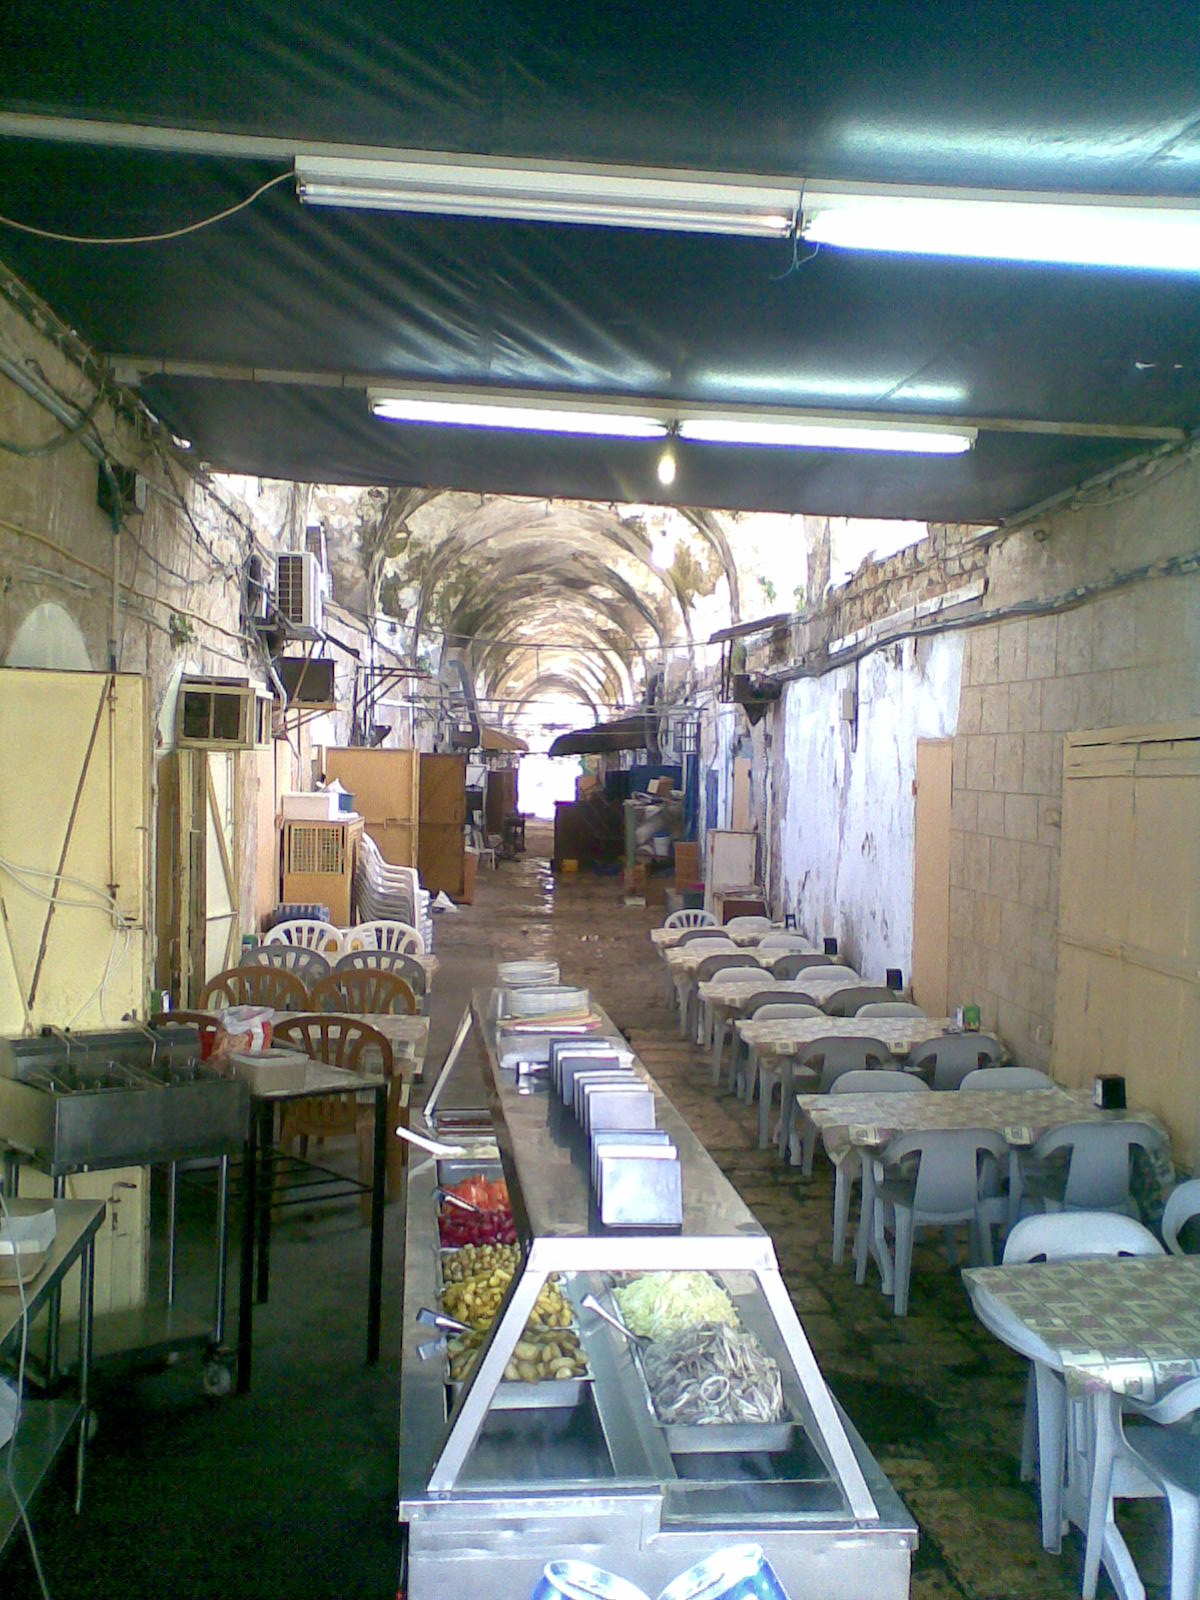 Acre - عكا : Aka - Old City/Market close to Aka Port @ Friday Mornning 6th March -2008 captured by M. Hajier